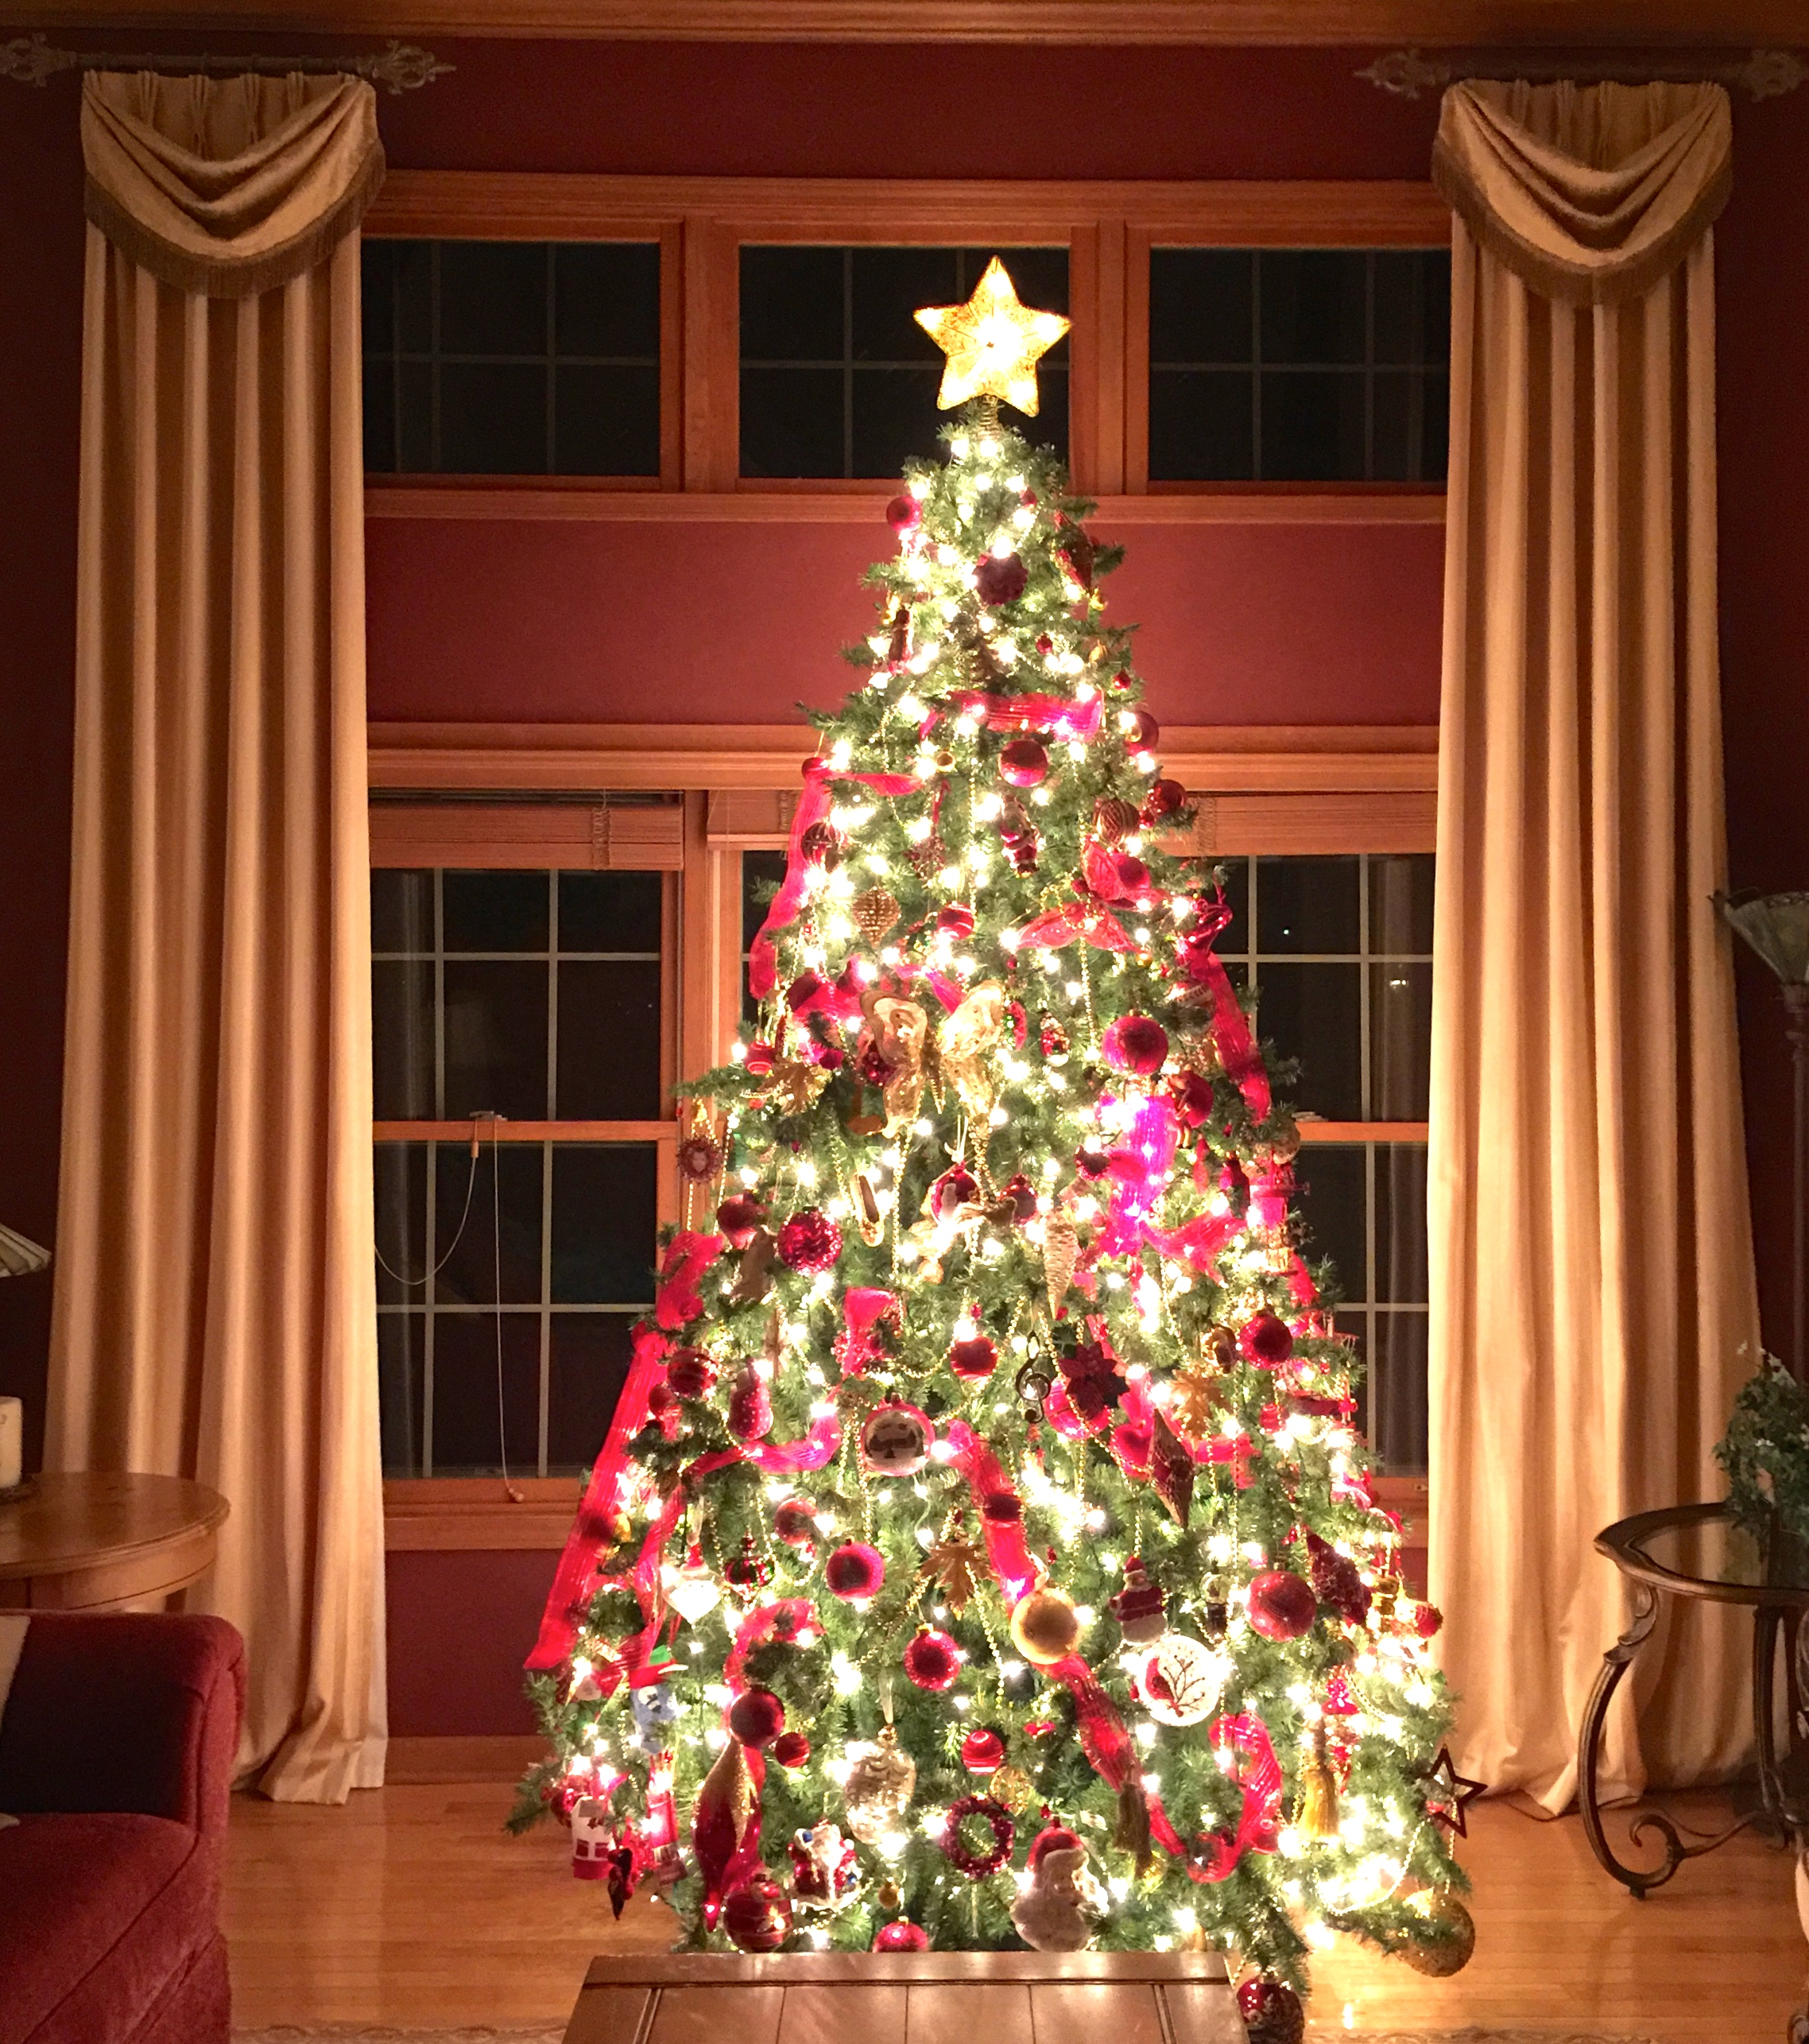 Decorating the Christmas Tree: A Little Thing I Love